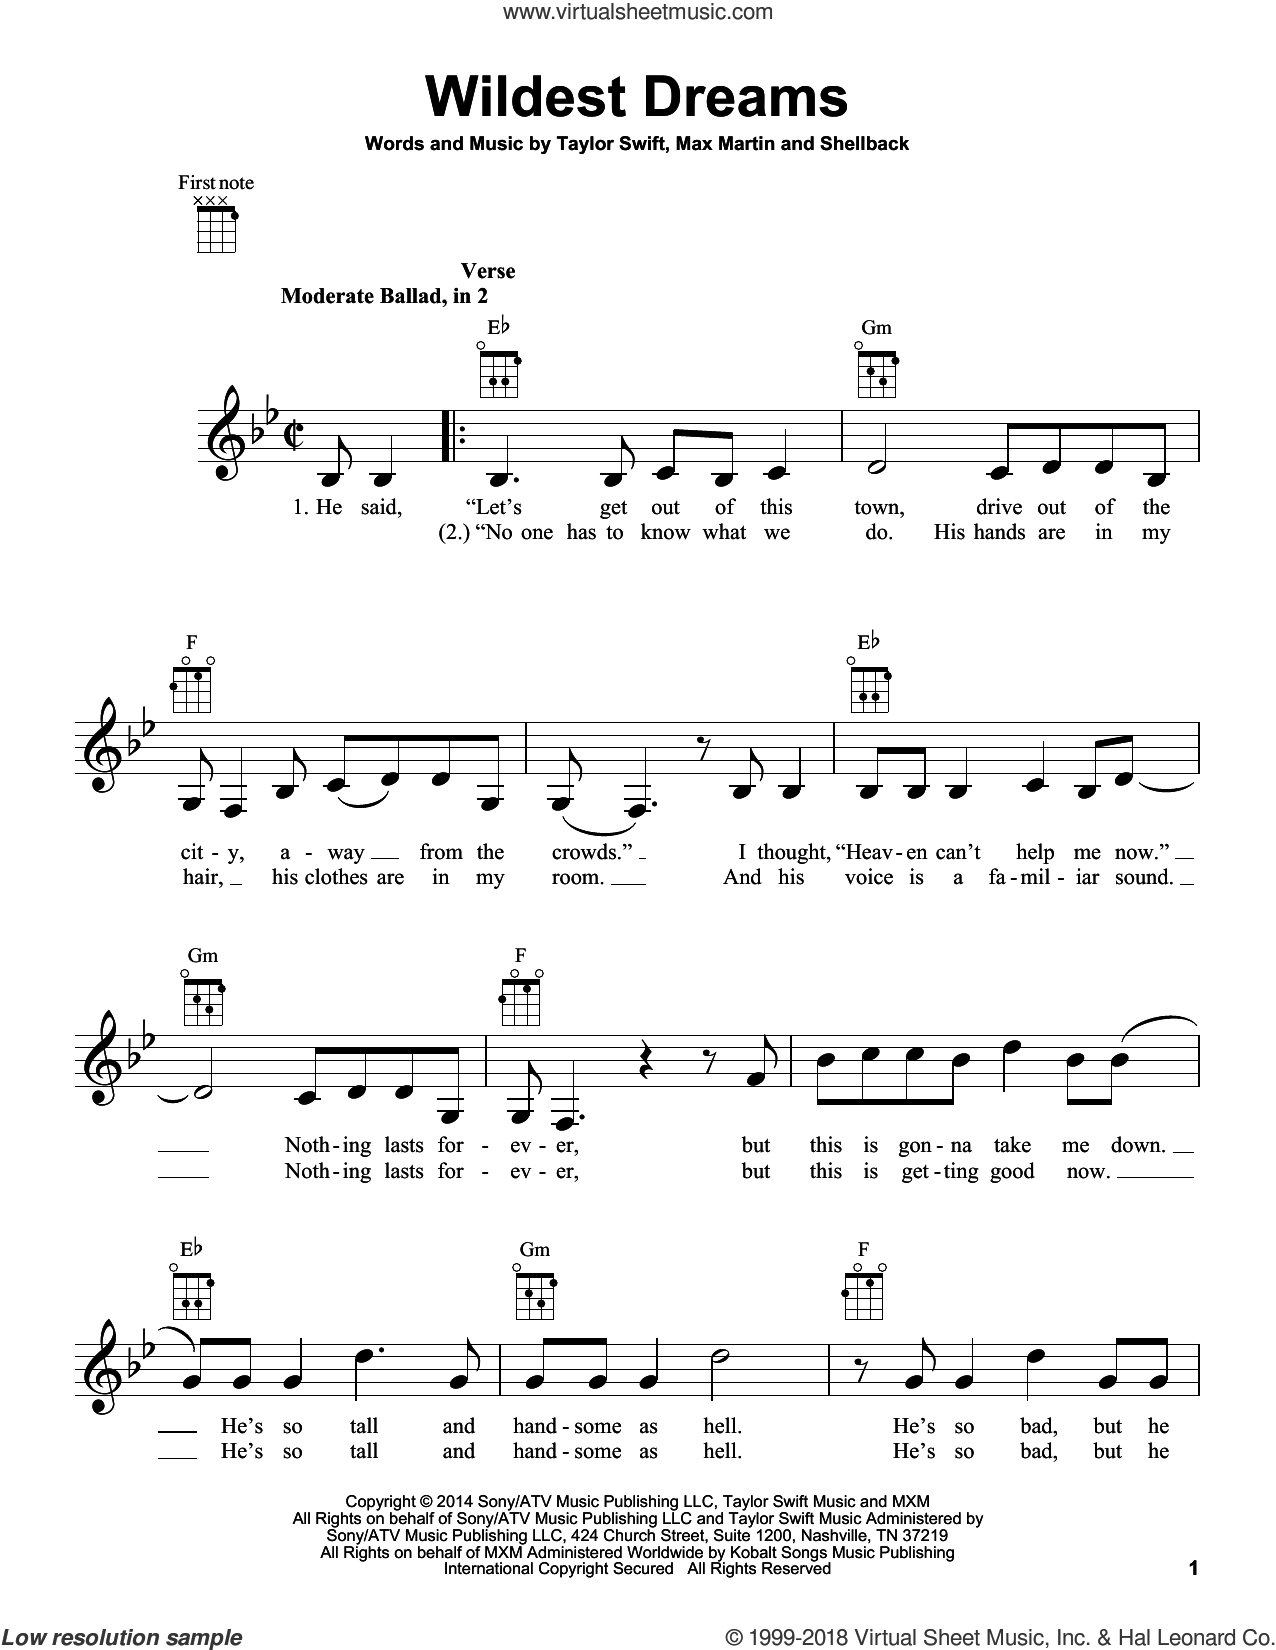 Wildest Dreams sheet music for ukulele by Taylor Swift, Johan Schuster, Max Martin and Shellback, intermediate ukulele. Score Image Preview.